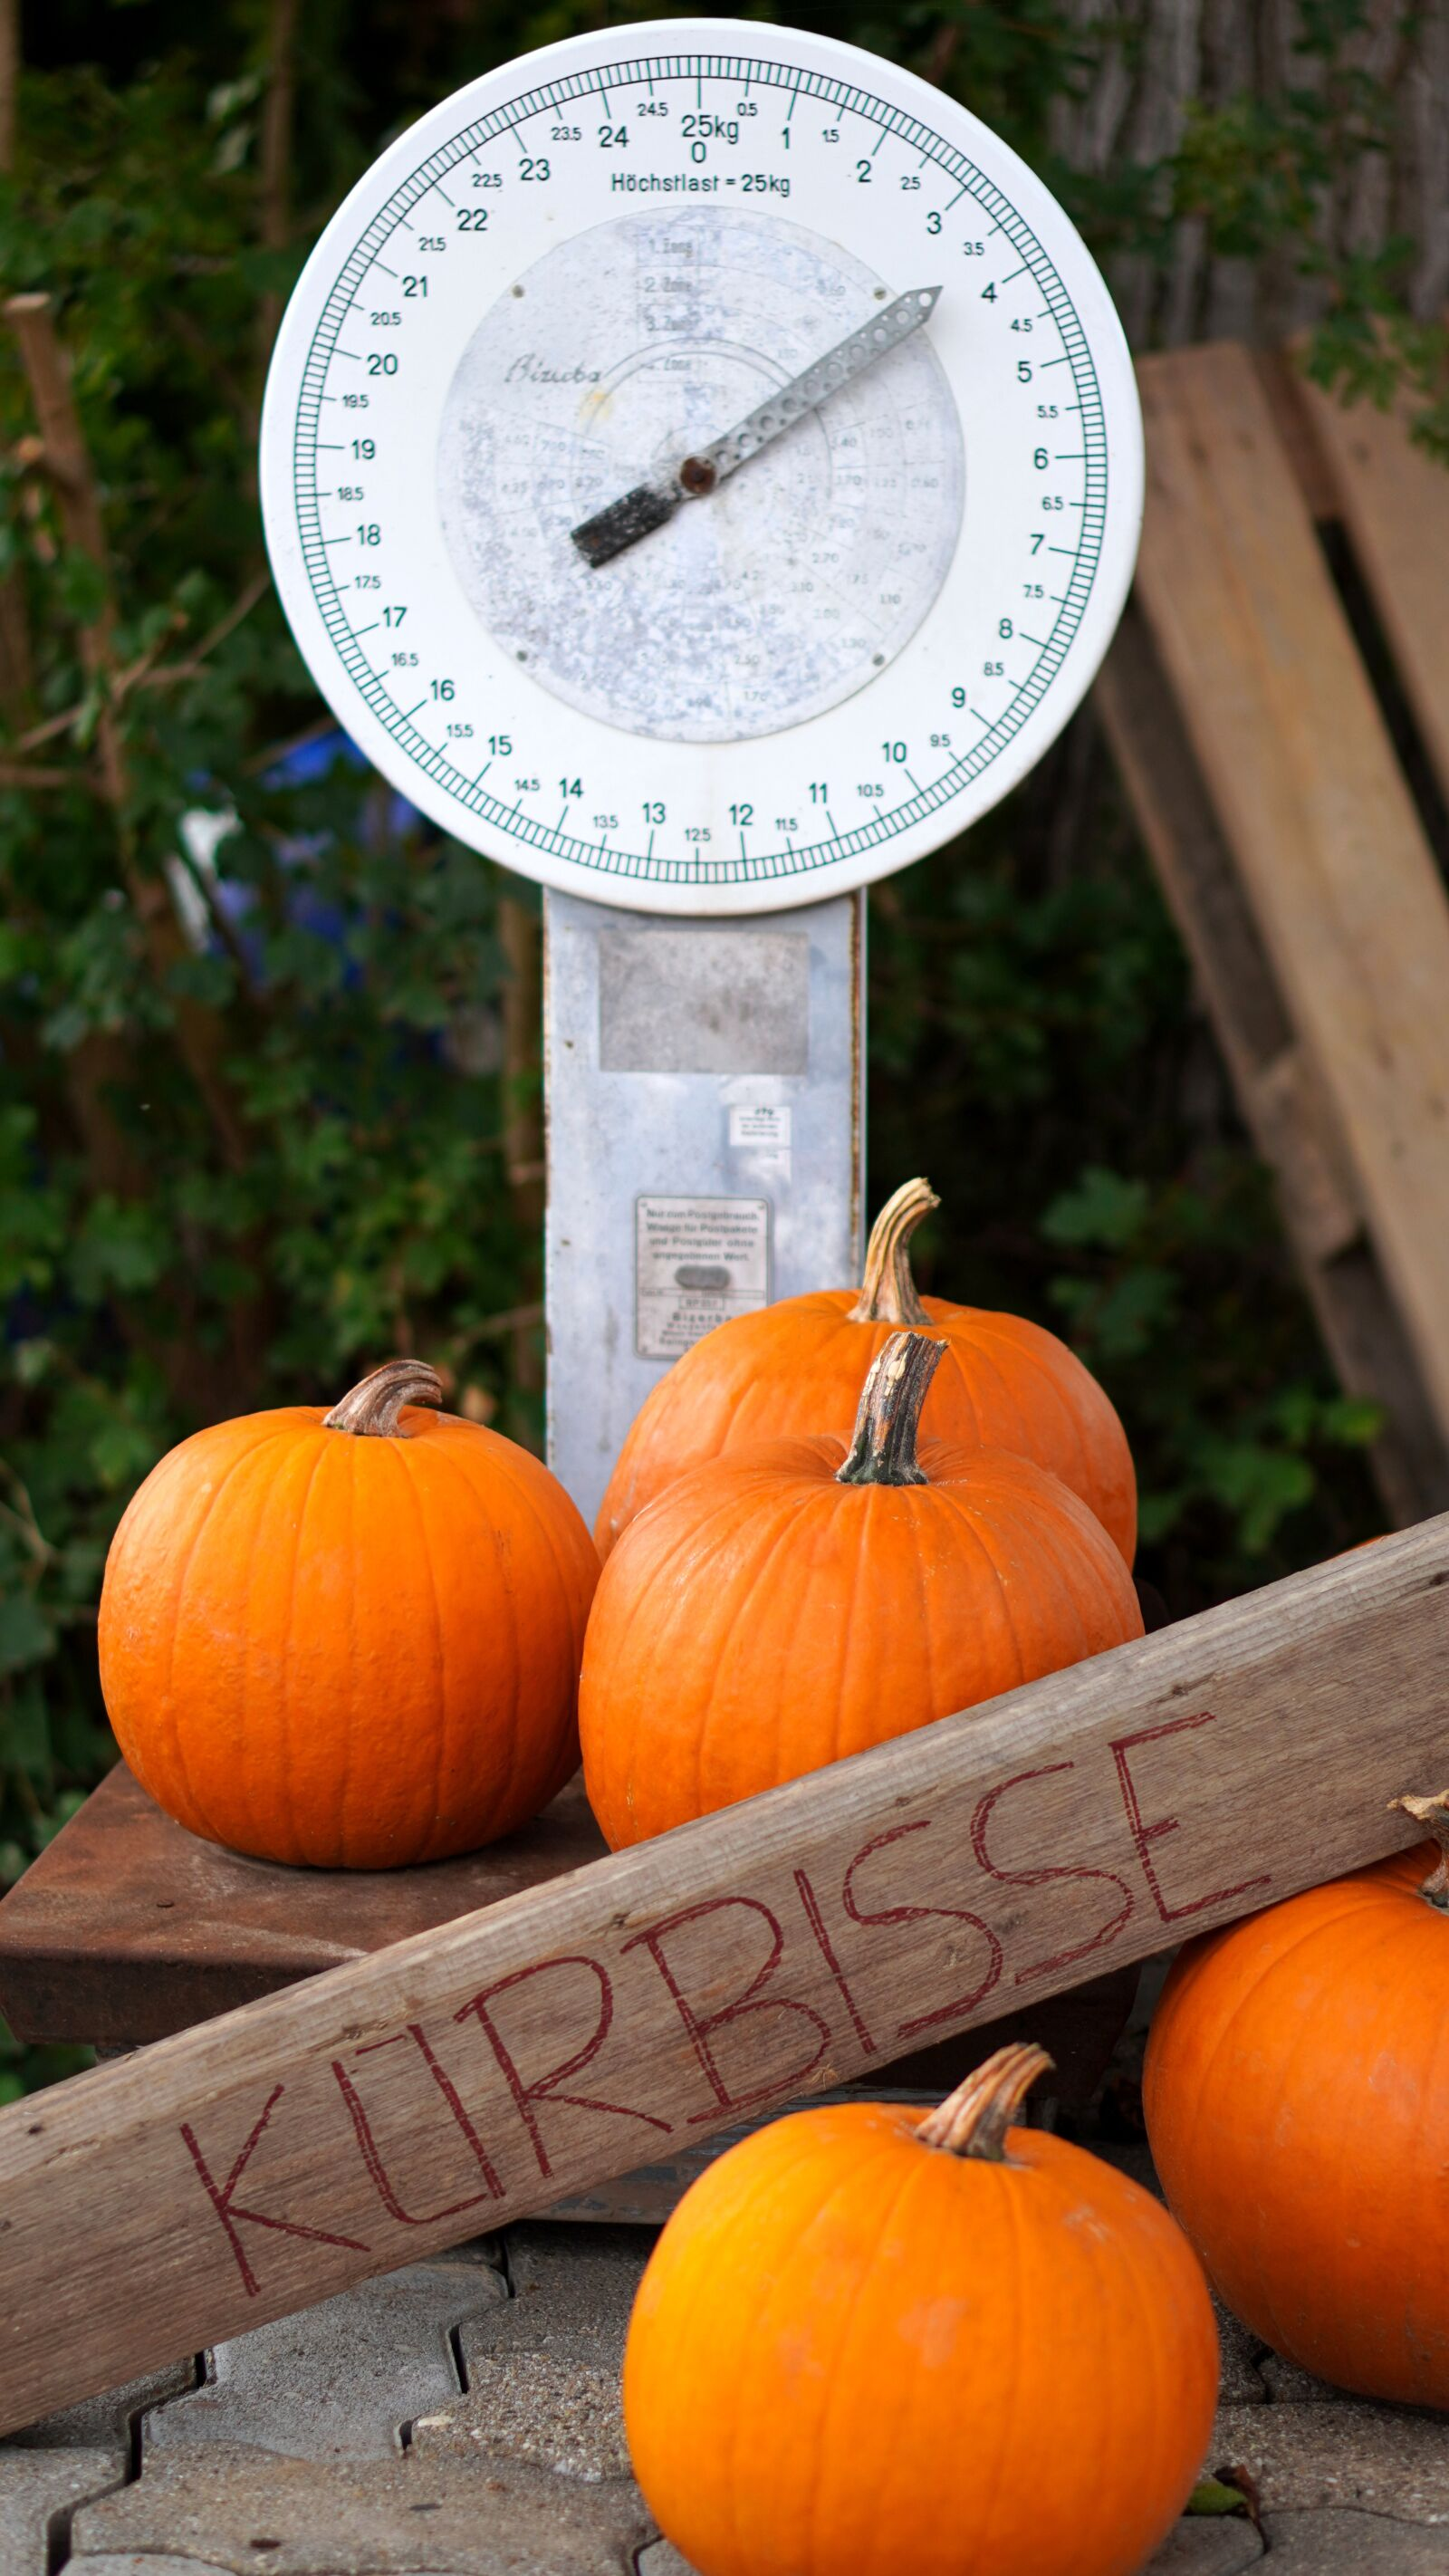 """Sony a6400 sample photo. """"Weighing scale, pumpkins, vegetables"""" photography"""